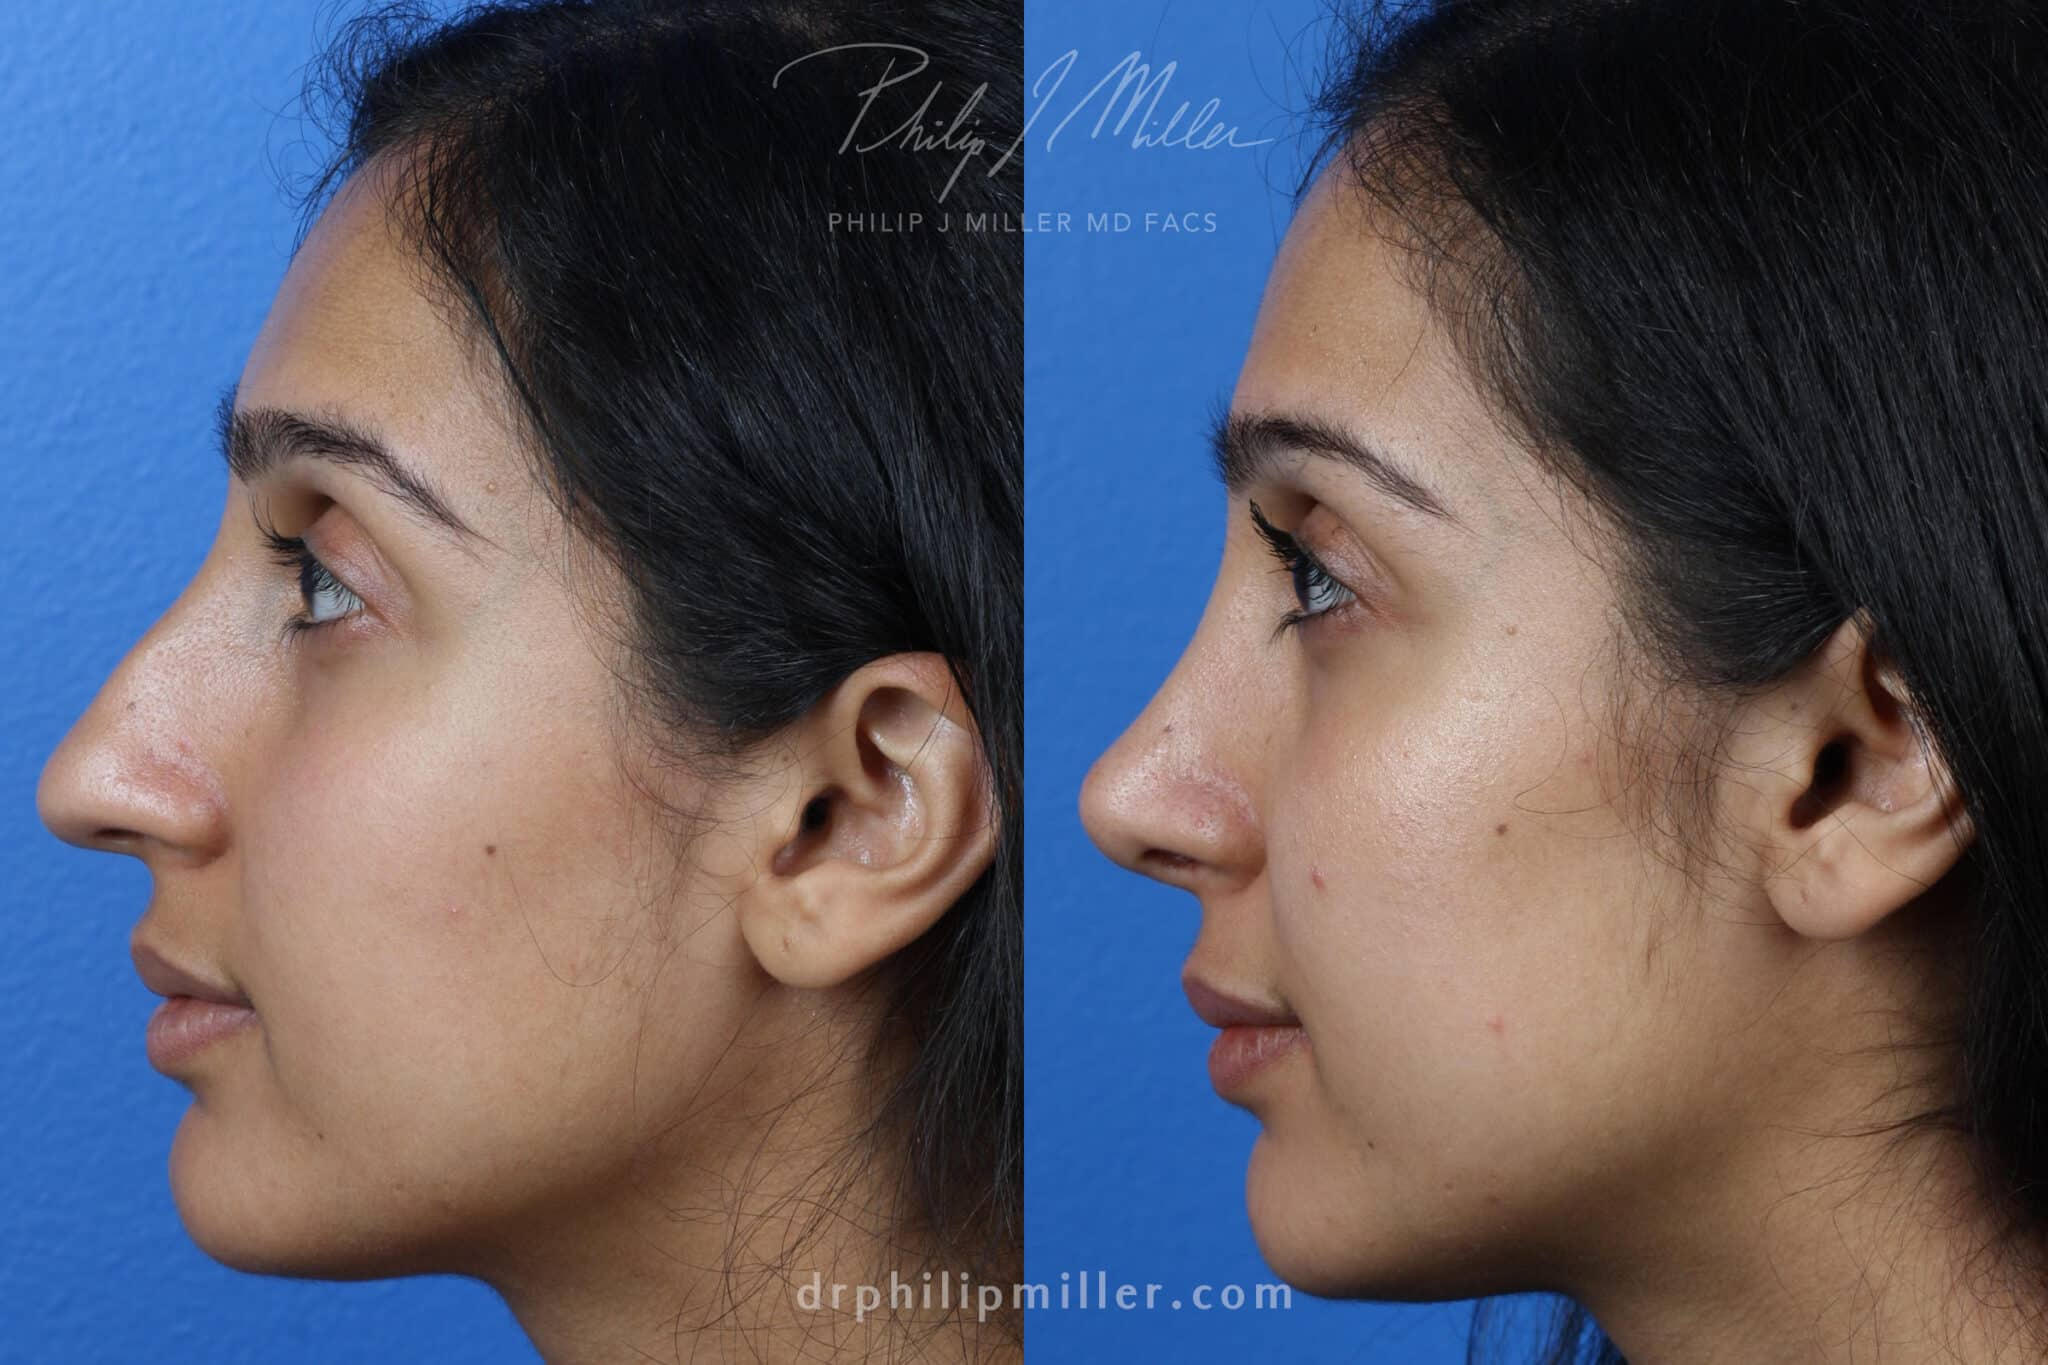 Rhinoplasty to Correct Nasal Bridge of a Female Patient by Dr. Miller